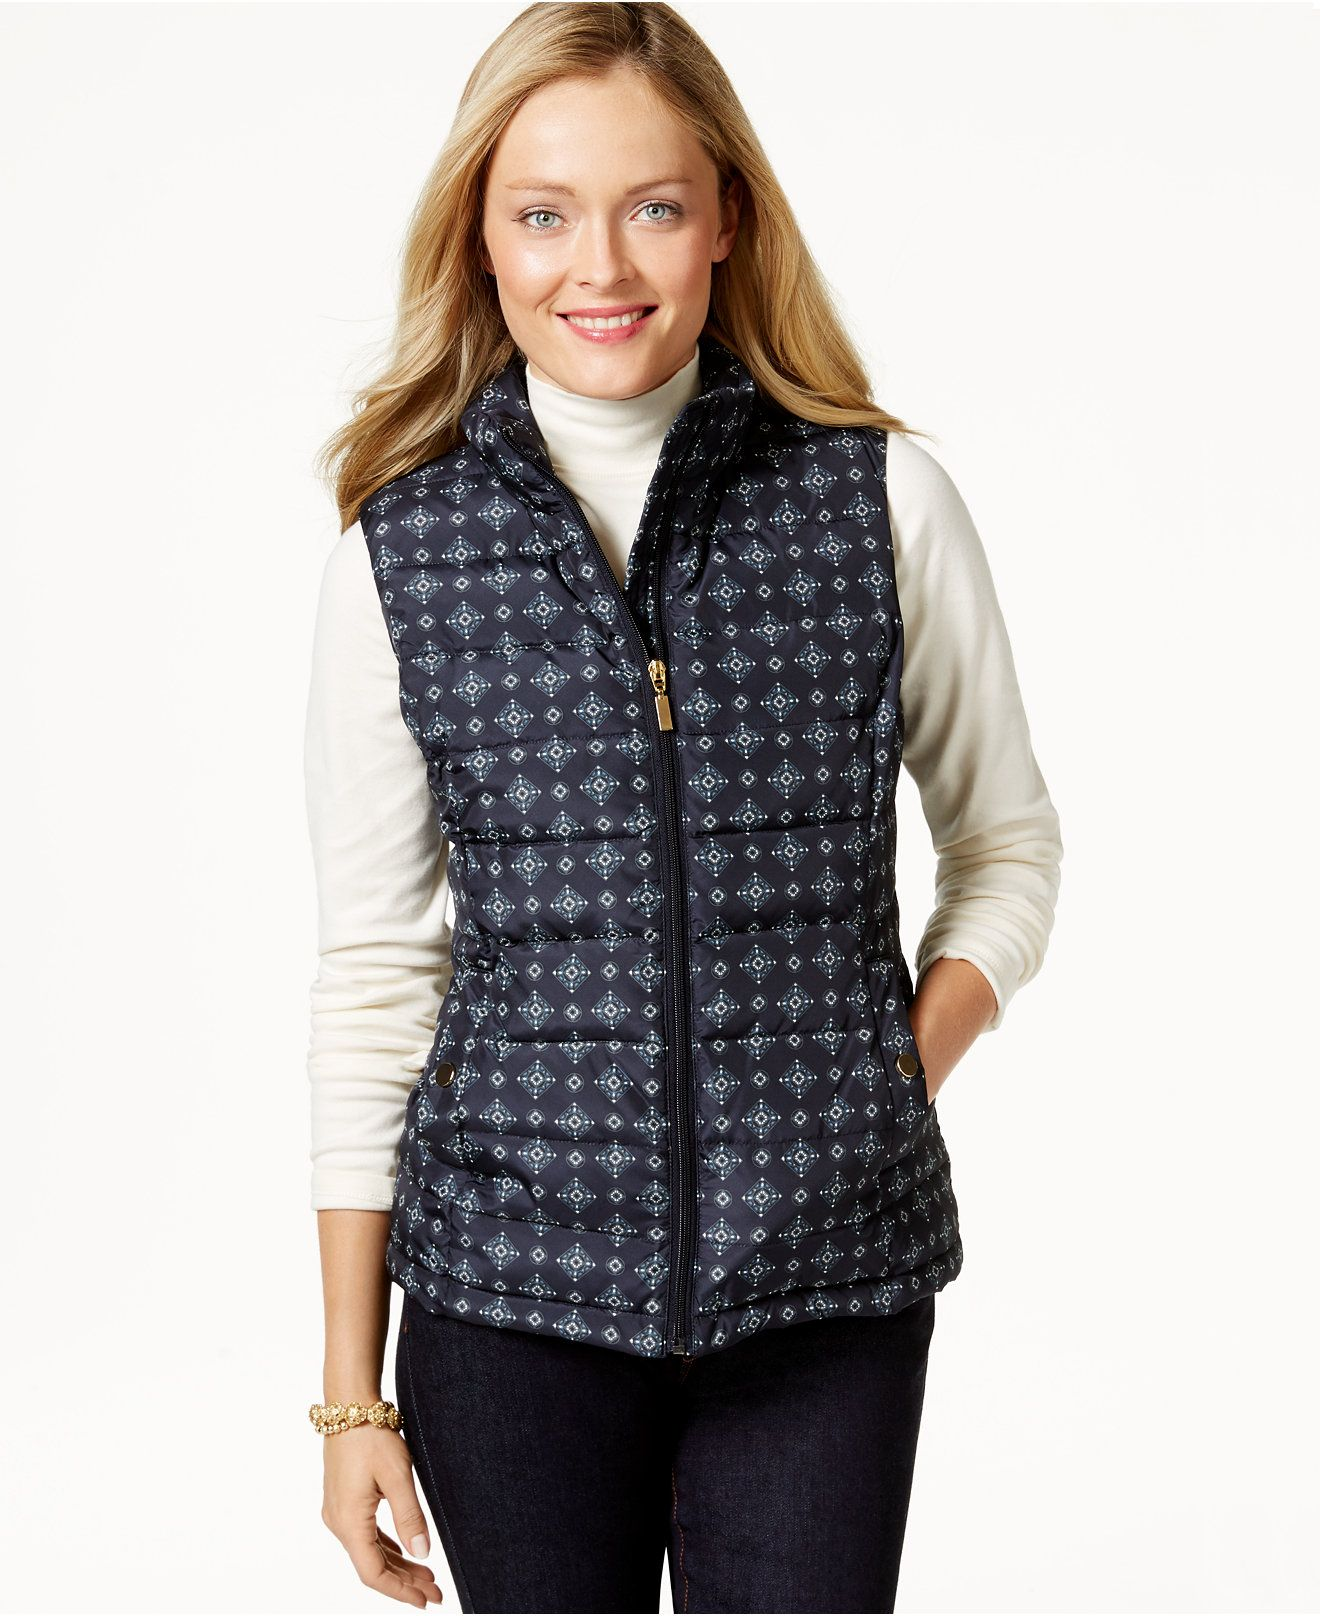 paris s louise quilt vest shoes women outerwear pin the clothing quilted